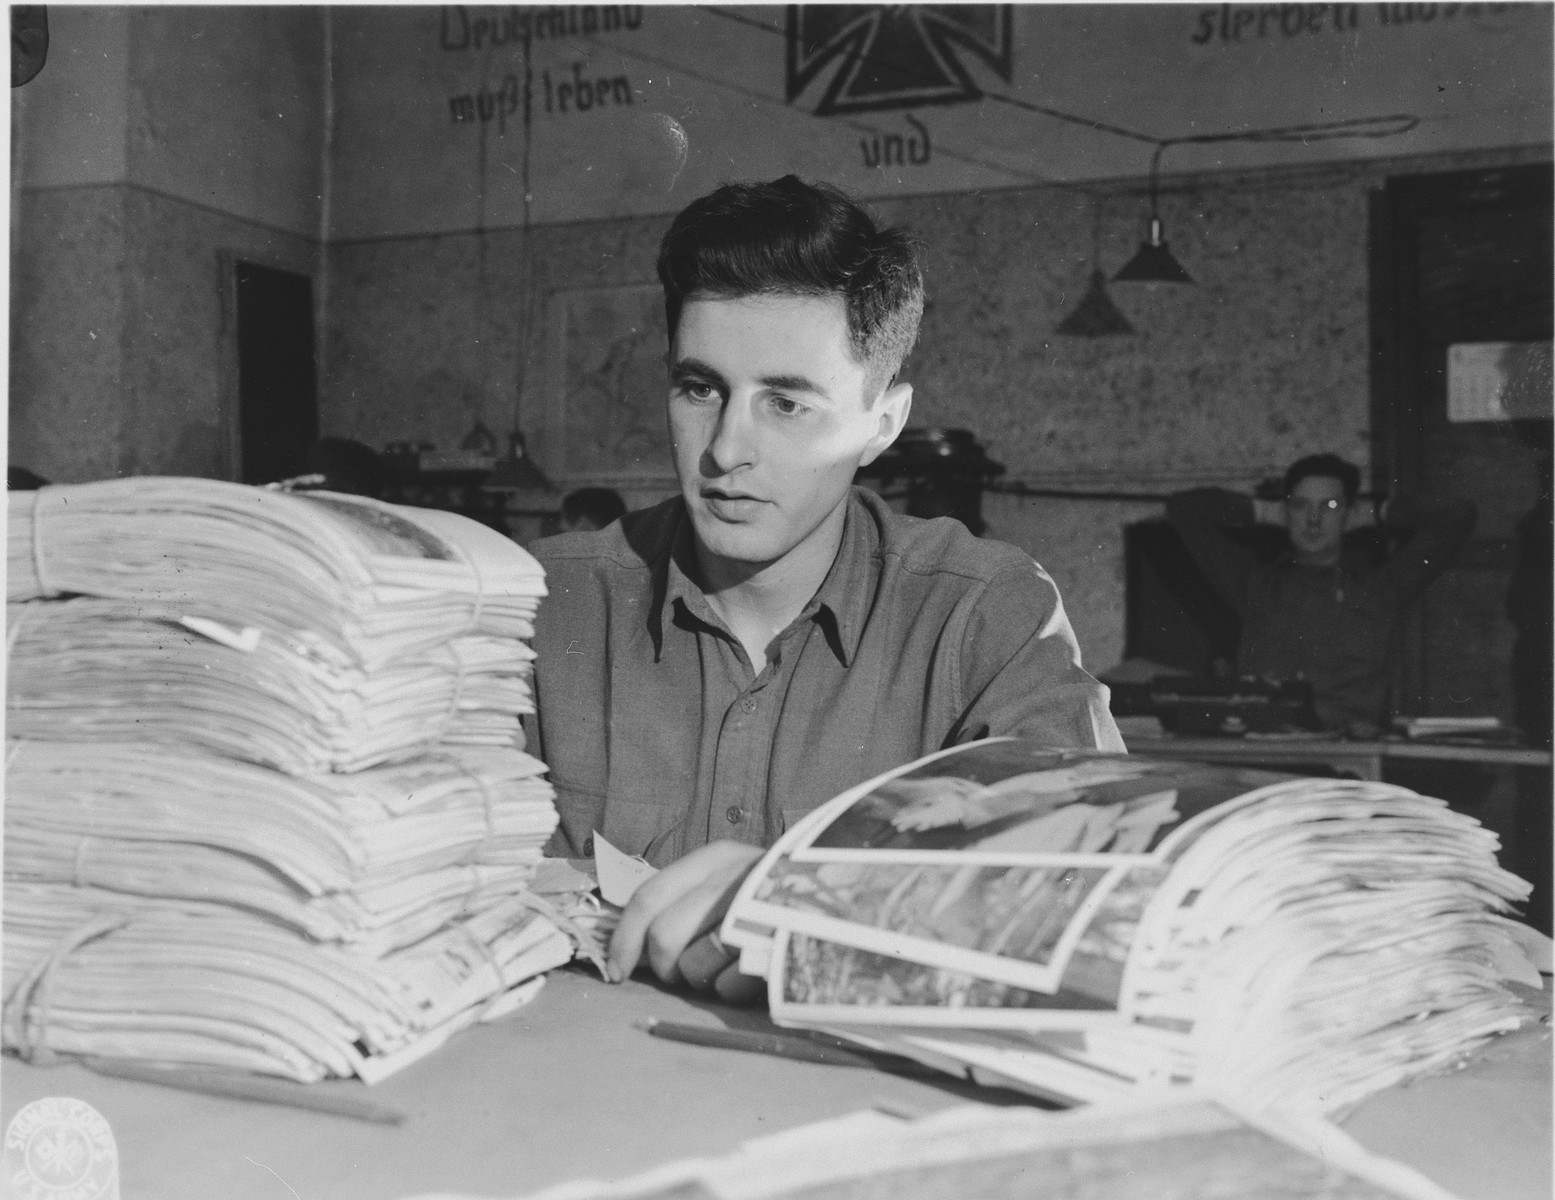 U.S. army photographer John O'Brien reviews a stack of Signal Corps photographs.